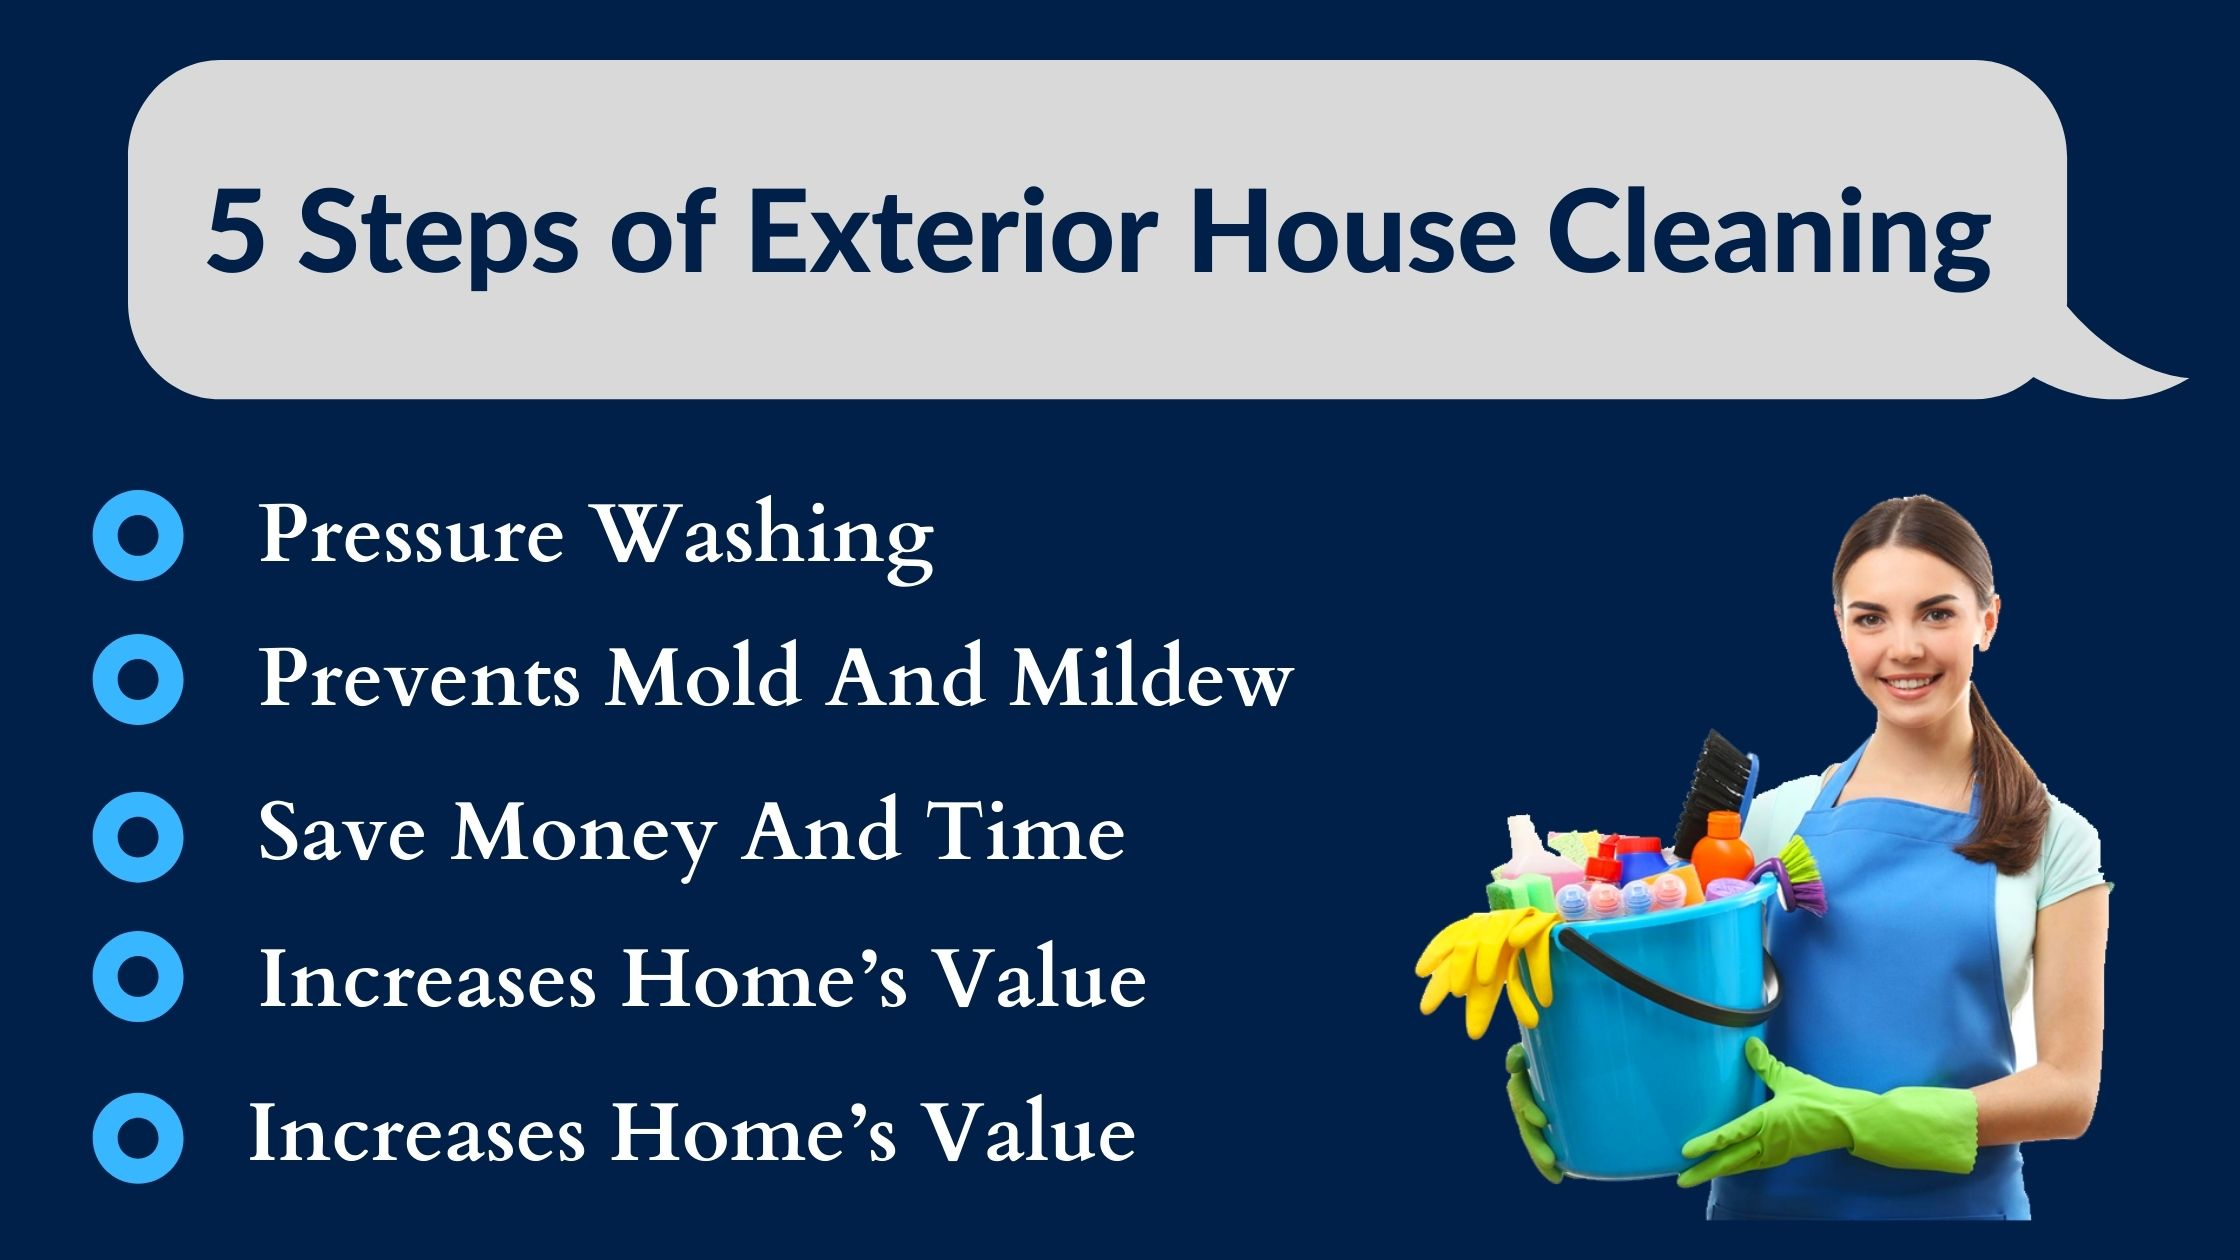 5 Steps of Exterior House Cleaning Process to Follow